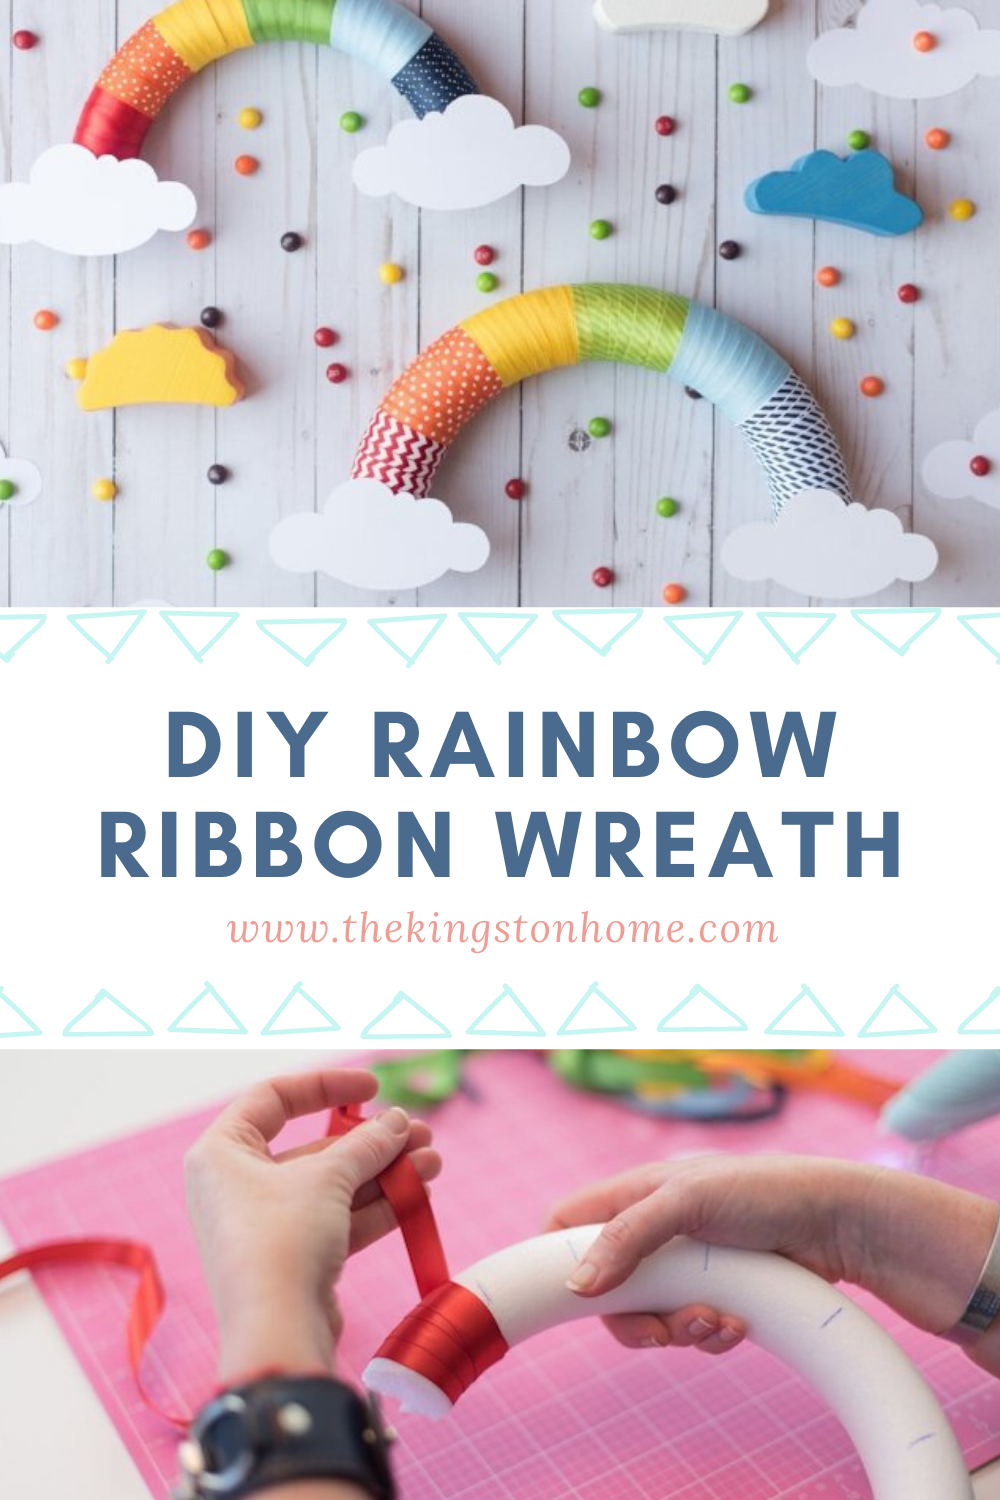 DIY Rainbow Ribbon Wreath - The Kingson Home: Looking for something to do with that leftover ribbon? Grab a hot glue gun and a foam wreath to create a DIY rainbow ribbon wreath - perfect for birthday parties, kids crafts, classroom decor and more. via @craftykingstons